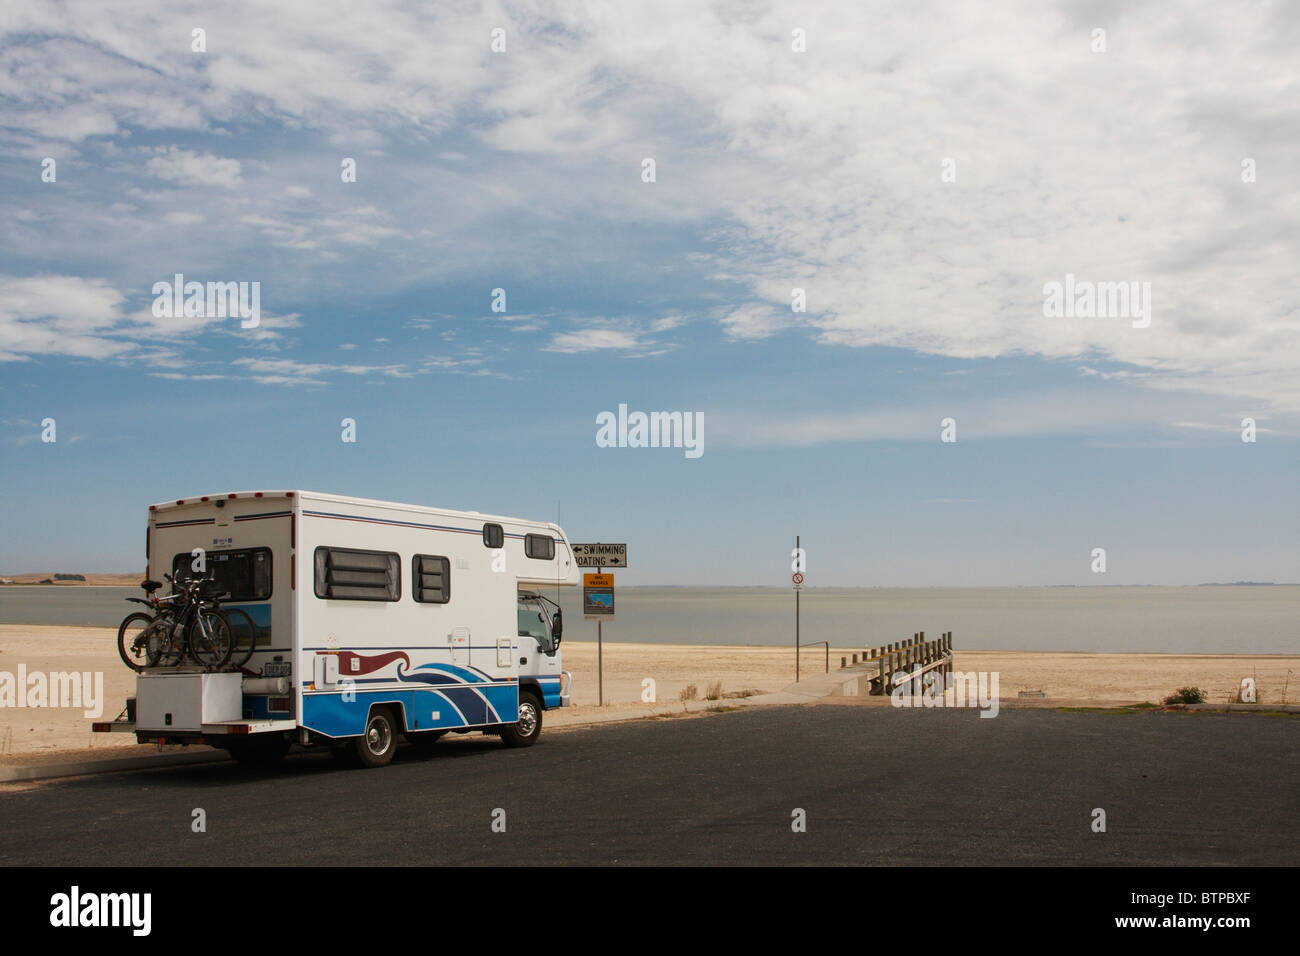 Australia, South Australia, Coorong, Meningie, Motorhome on road near beach - Stock Image